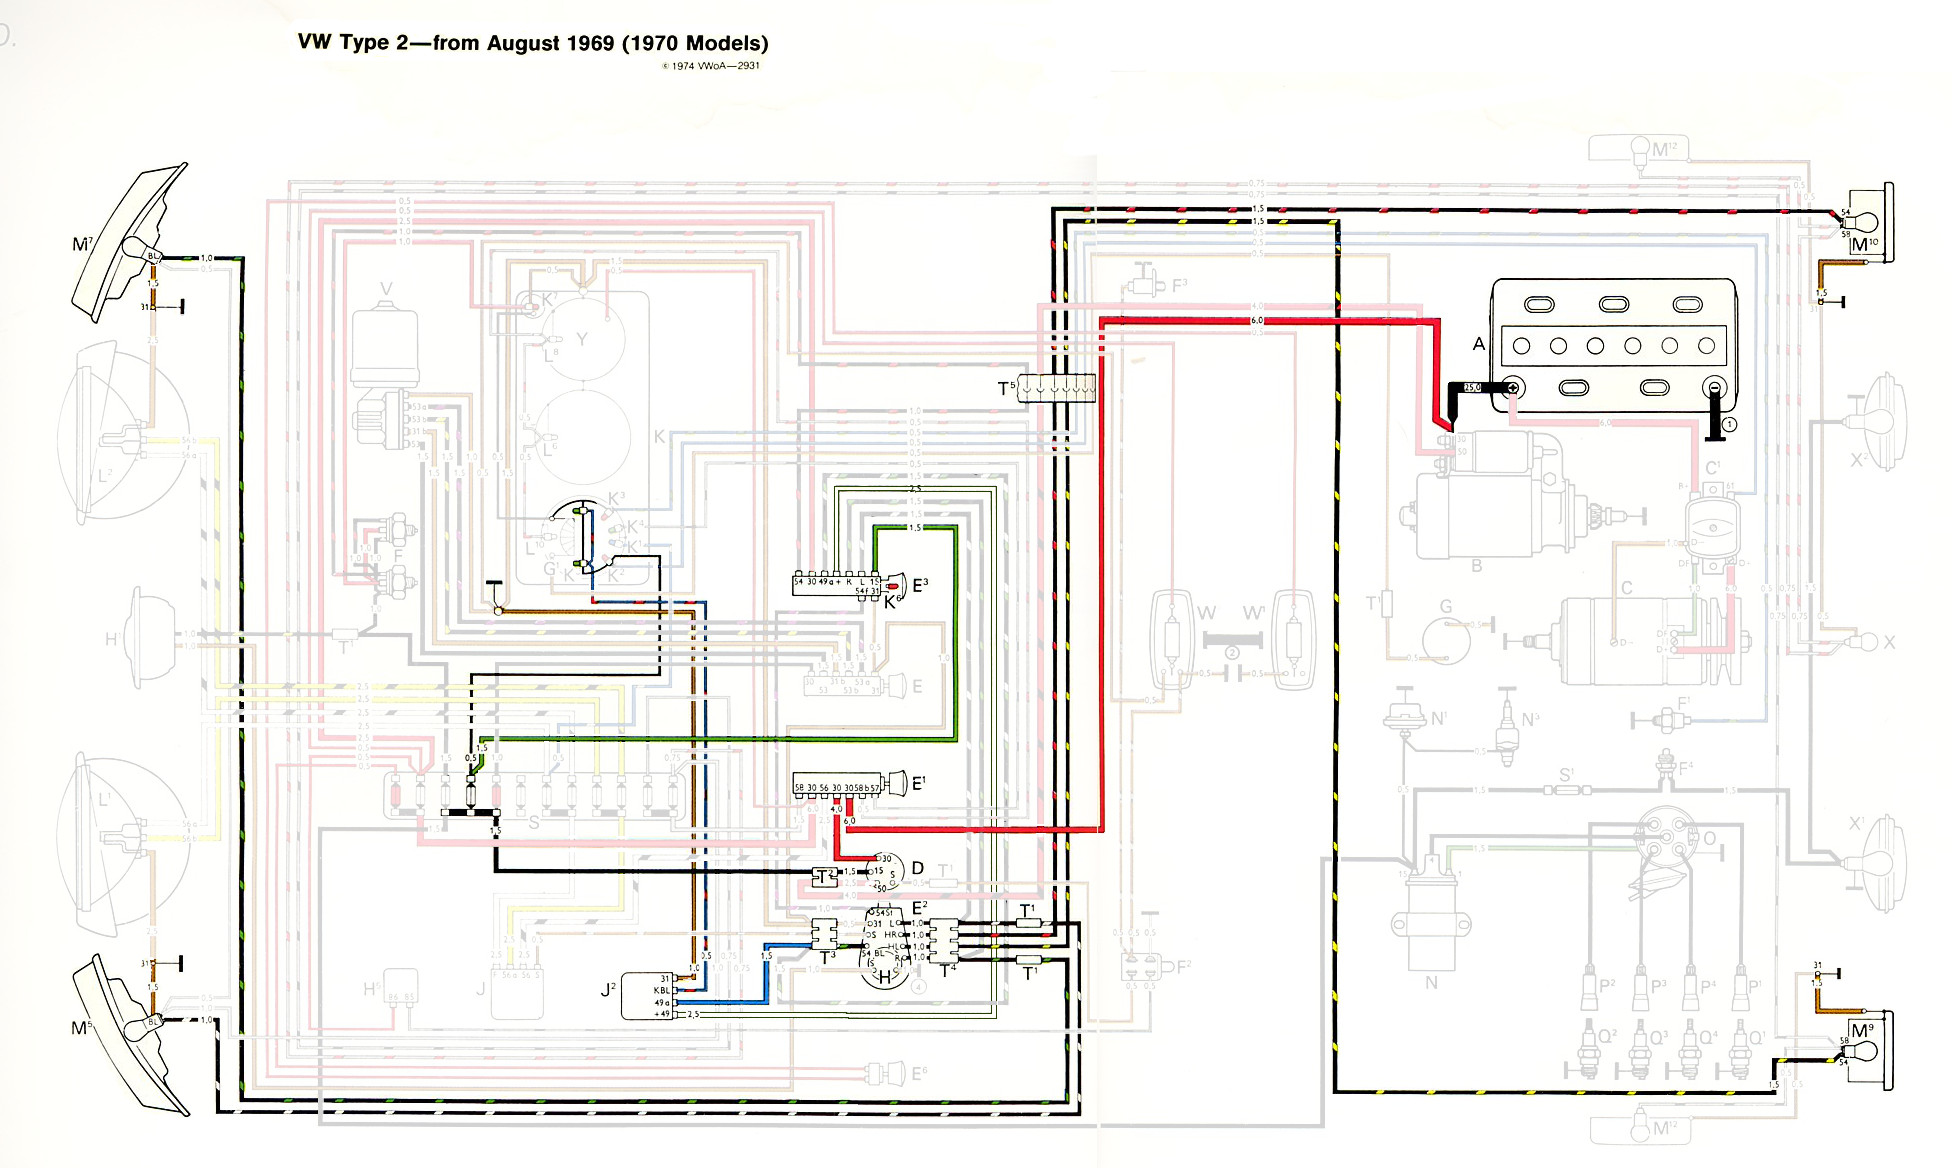 thesamba com type 2 wiring diagrams rh thesamba com 1962 VW Wiring Diagram 1959 VW Wiring Diagram